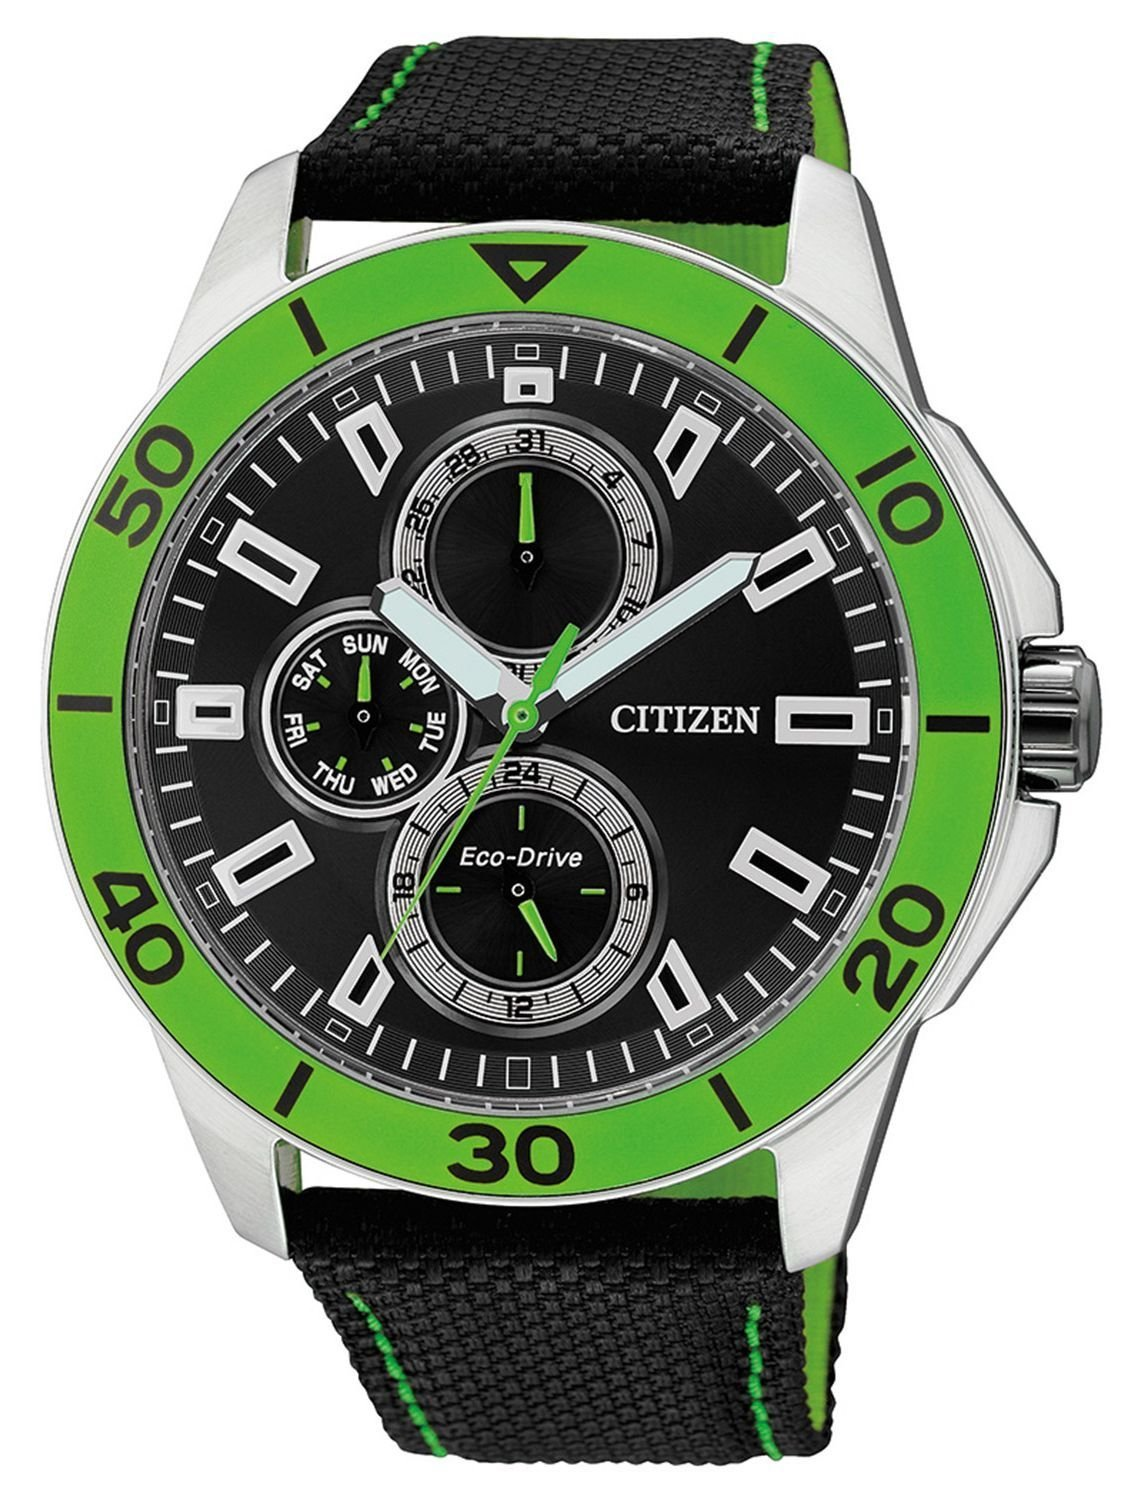 Citizen Eco-Drive Metropolitan AP4030-06E Men's Watch